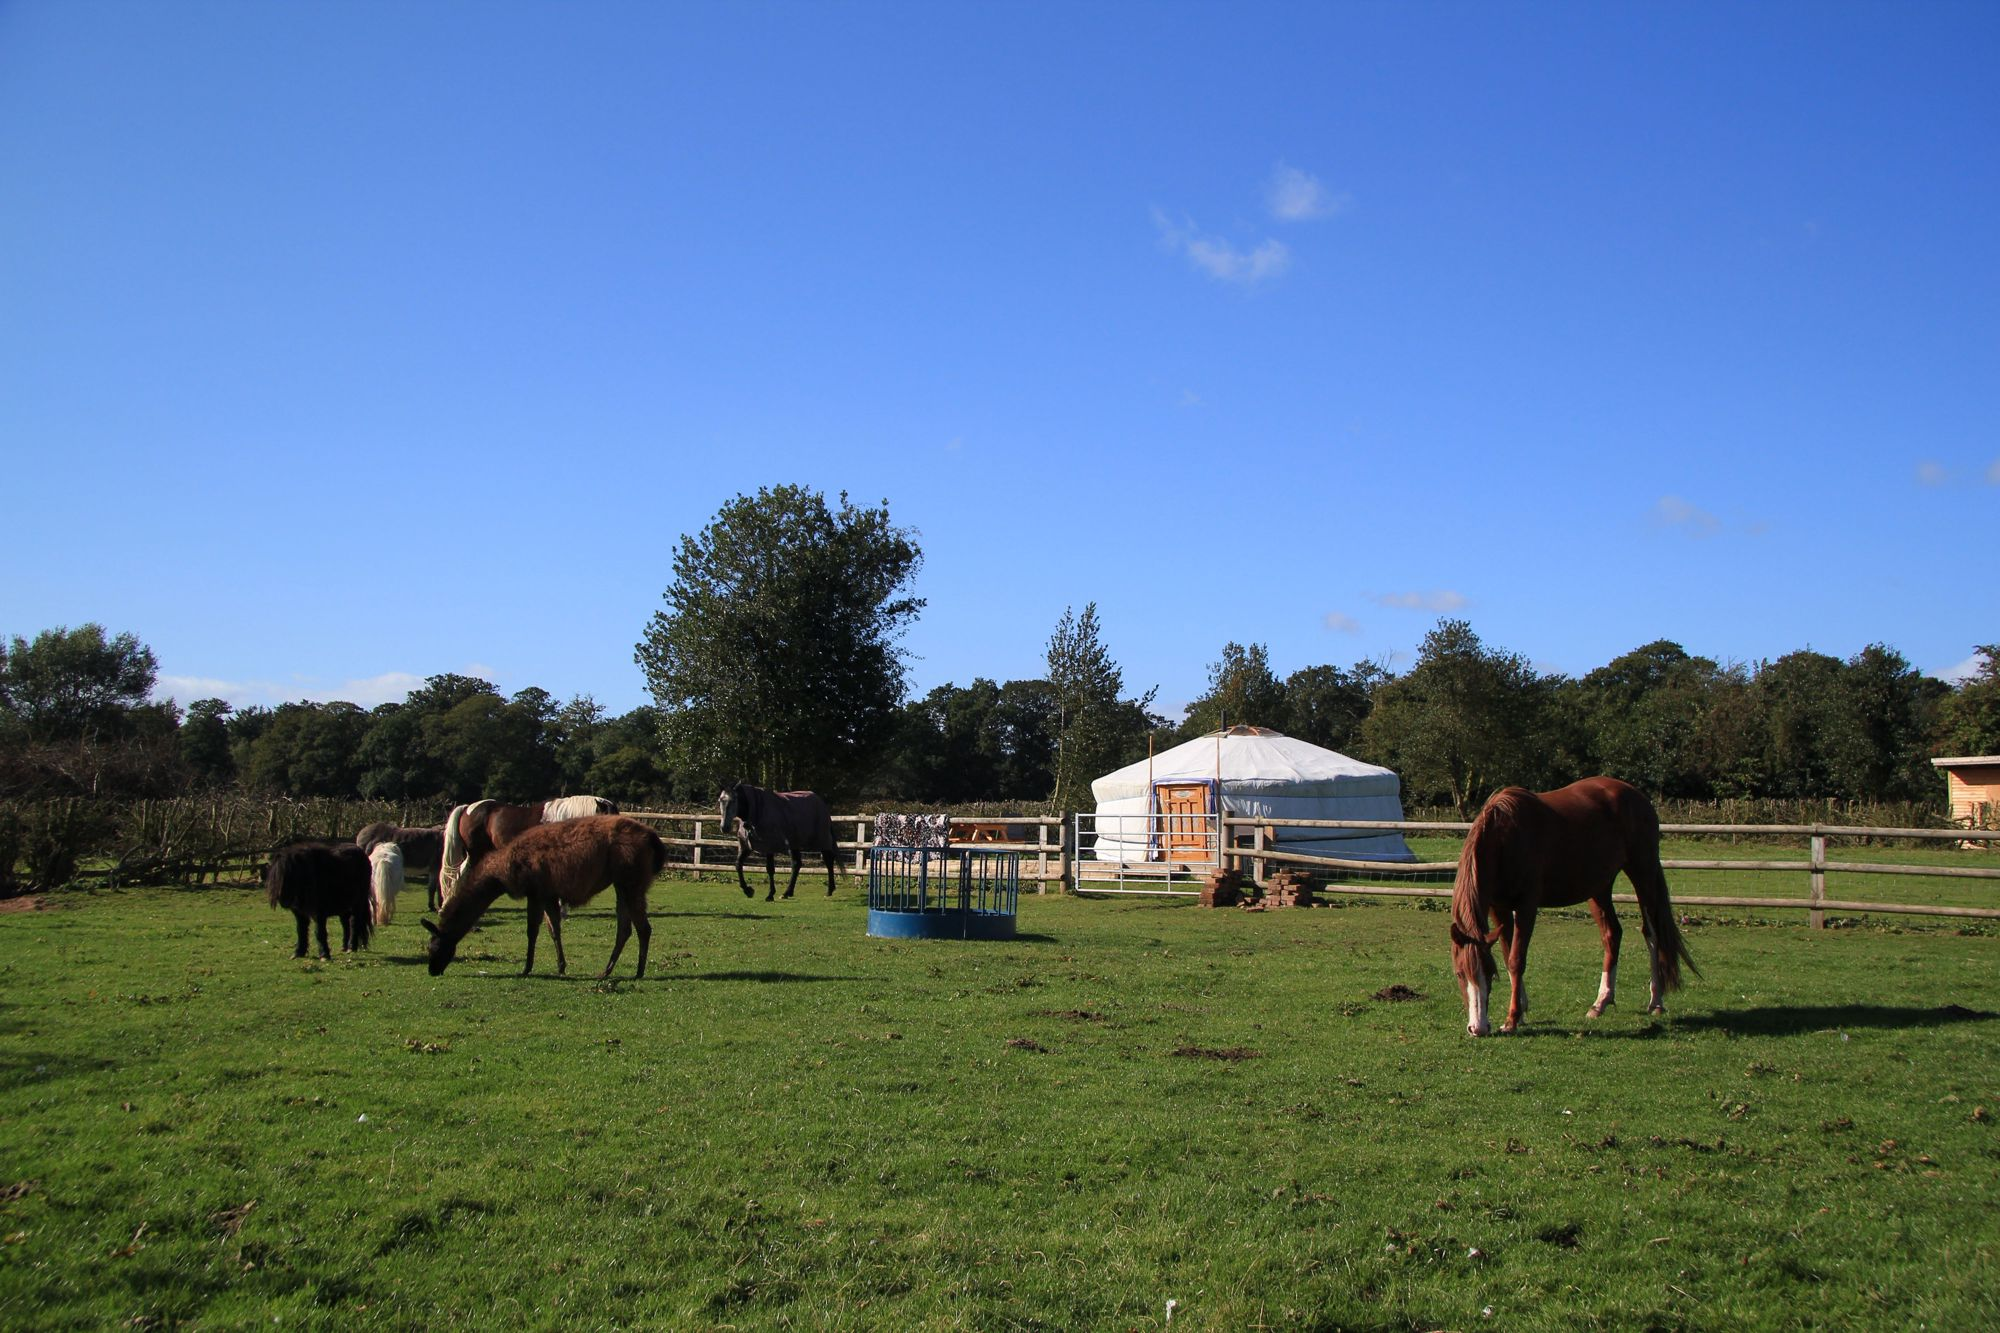 Farmyard glamping; what's not to love?